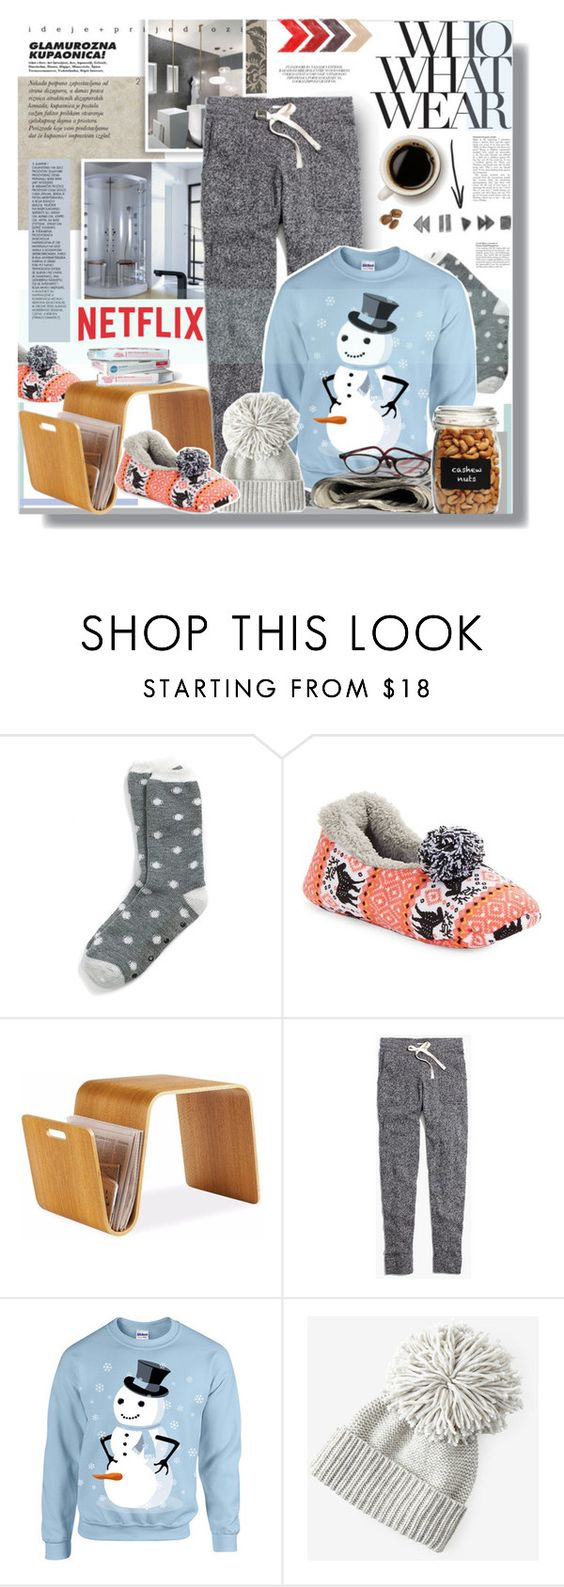 """""""What to Wear: Netflix Binge"""" by prigaut ❤ liked on Polyvore featuring Tommy Hilfiger, Kensie, Madewell, Circle Glass, WhatToWear, OneLazyDay and ItsMovieTime"""